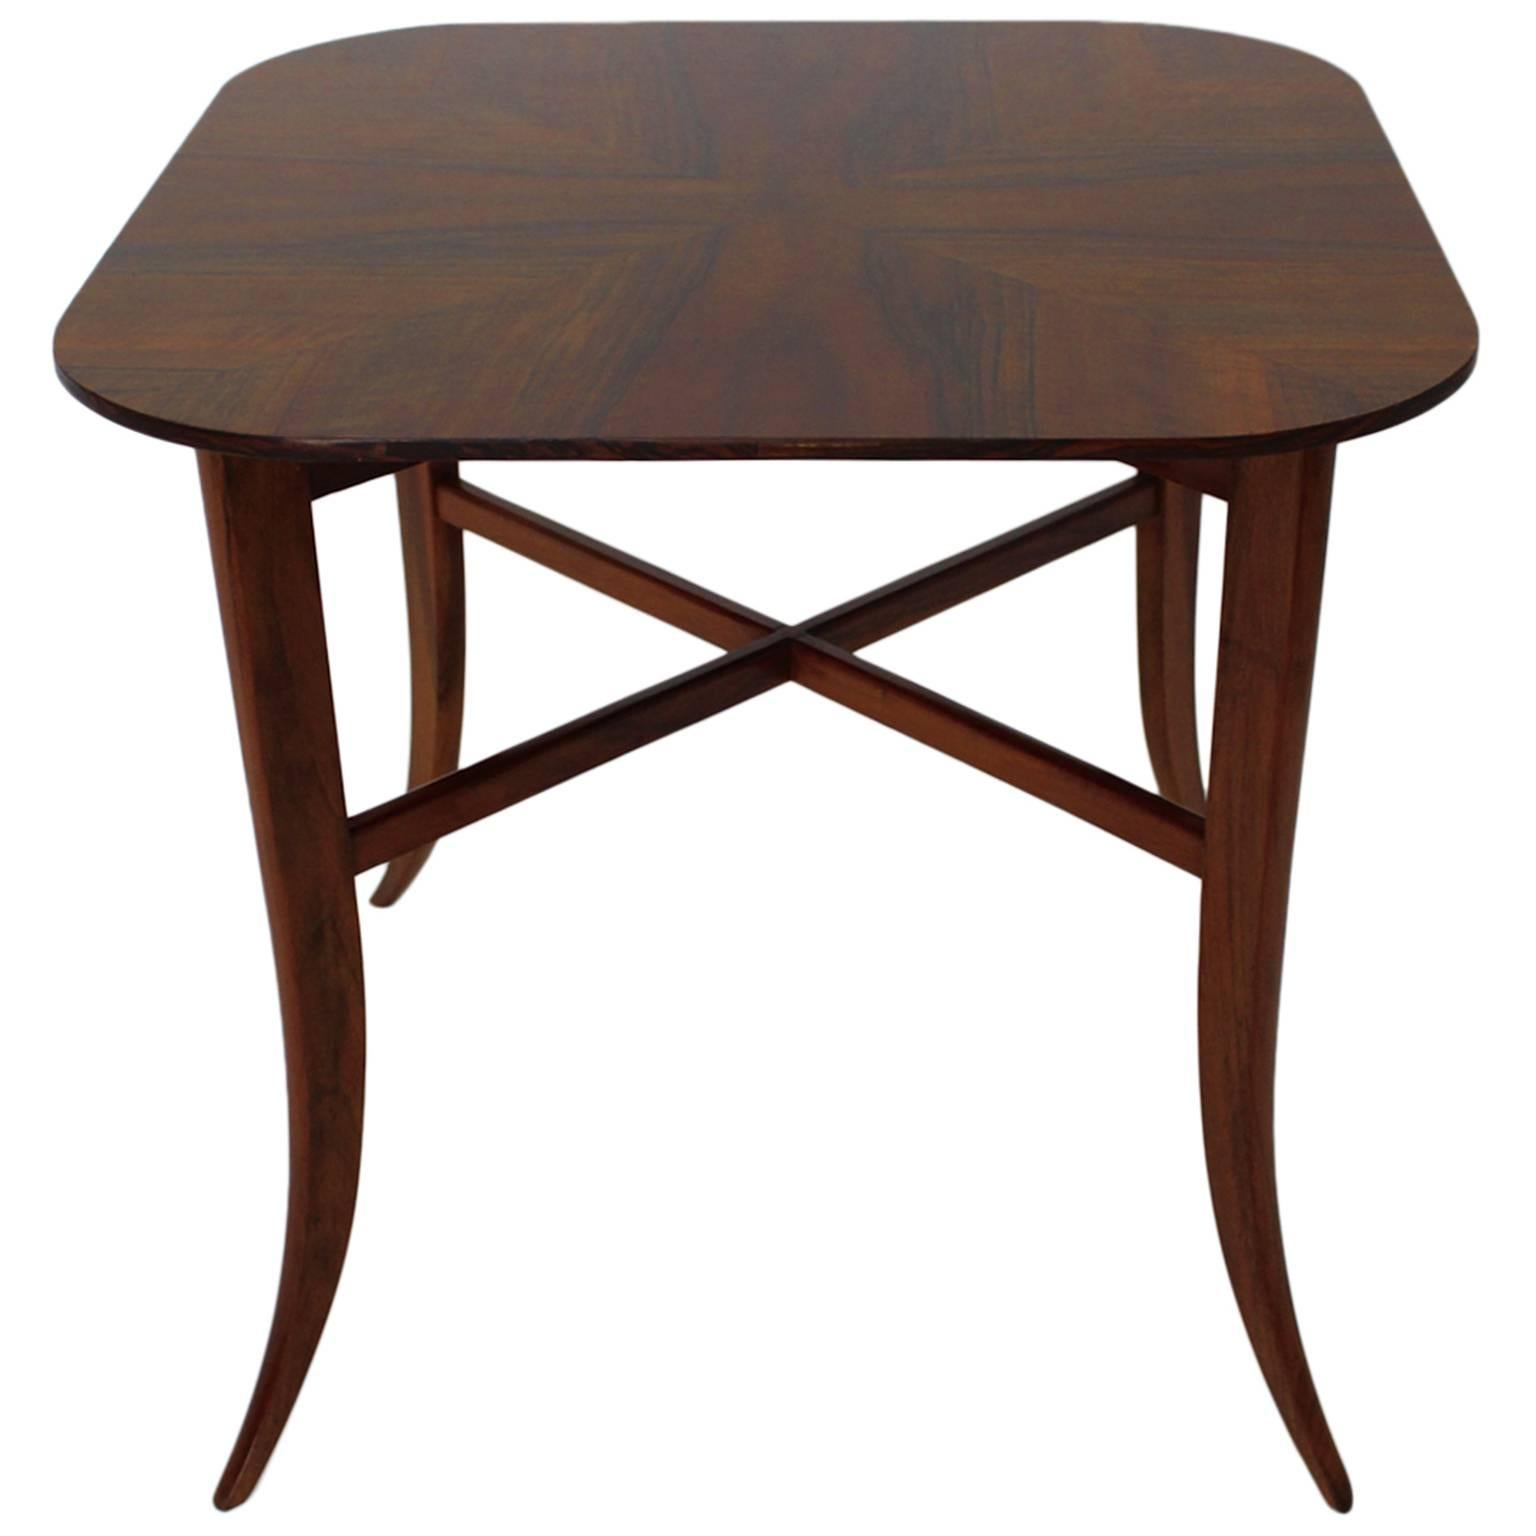 Art Deco Vintage Walnut Coffee Table or Side Table by Josef Frank, 1930s, Vienna